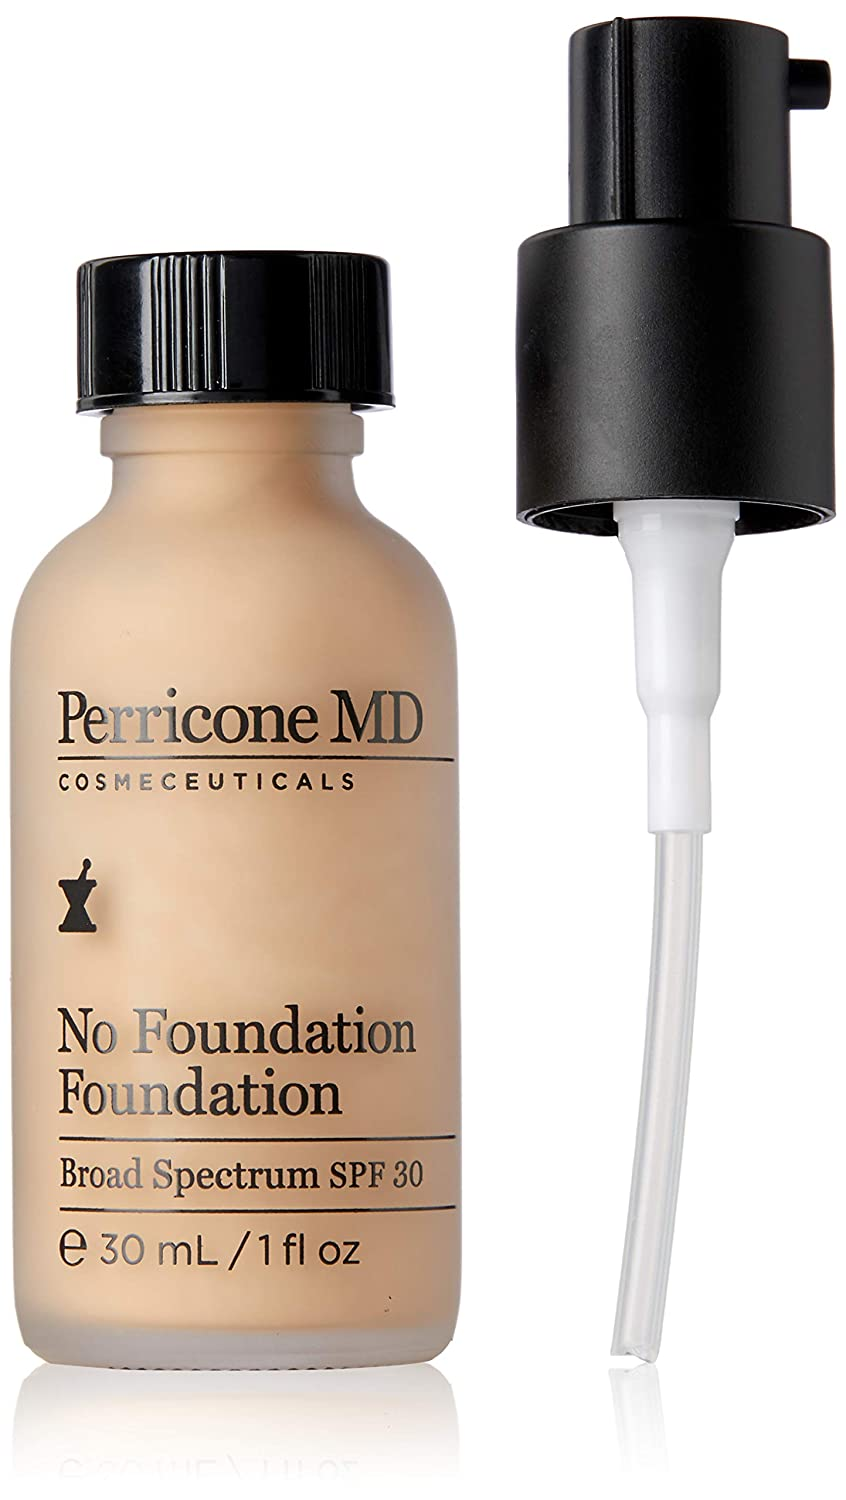 ドクターペリコン No Foundation Foundation SPF 30 - NO. 1 Fair to Light 30ml B015ABLKJ8